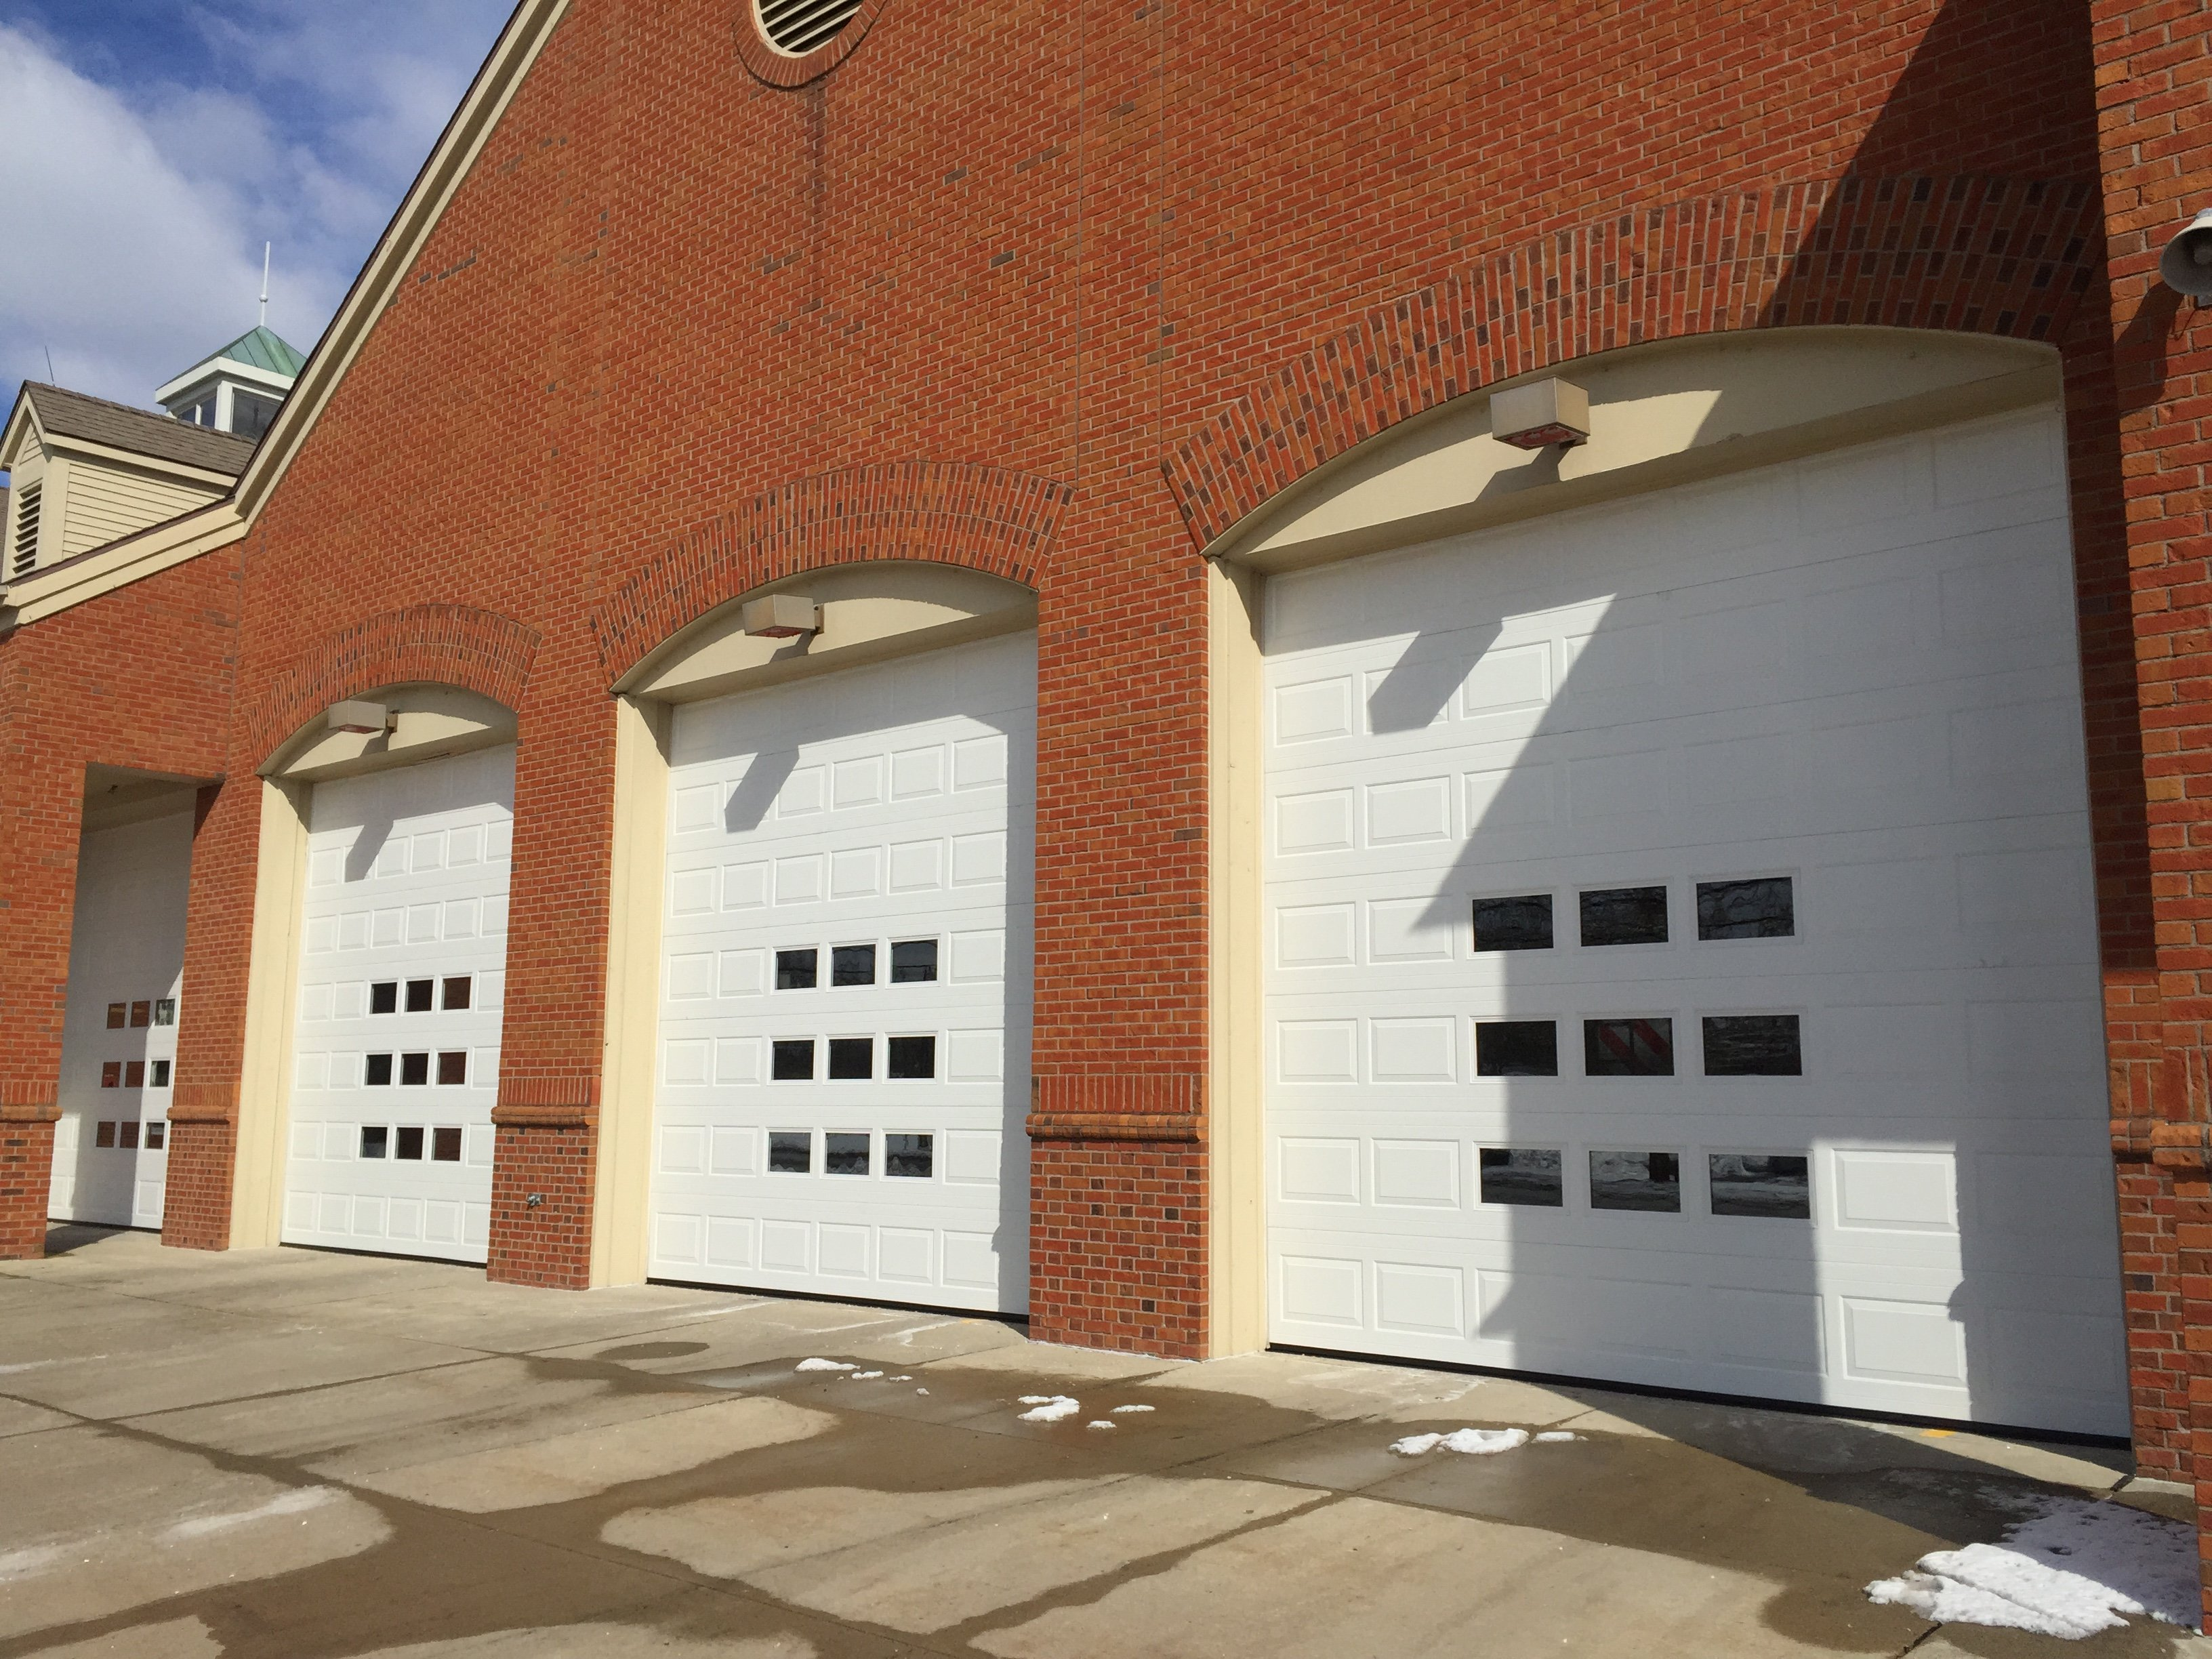 Commercial garage door service in columbus 614 873 3905 for Dublin garage door repair